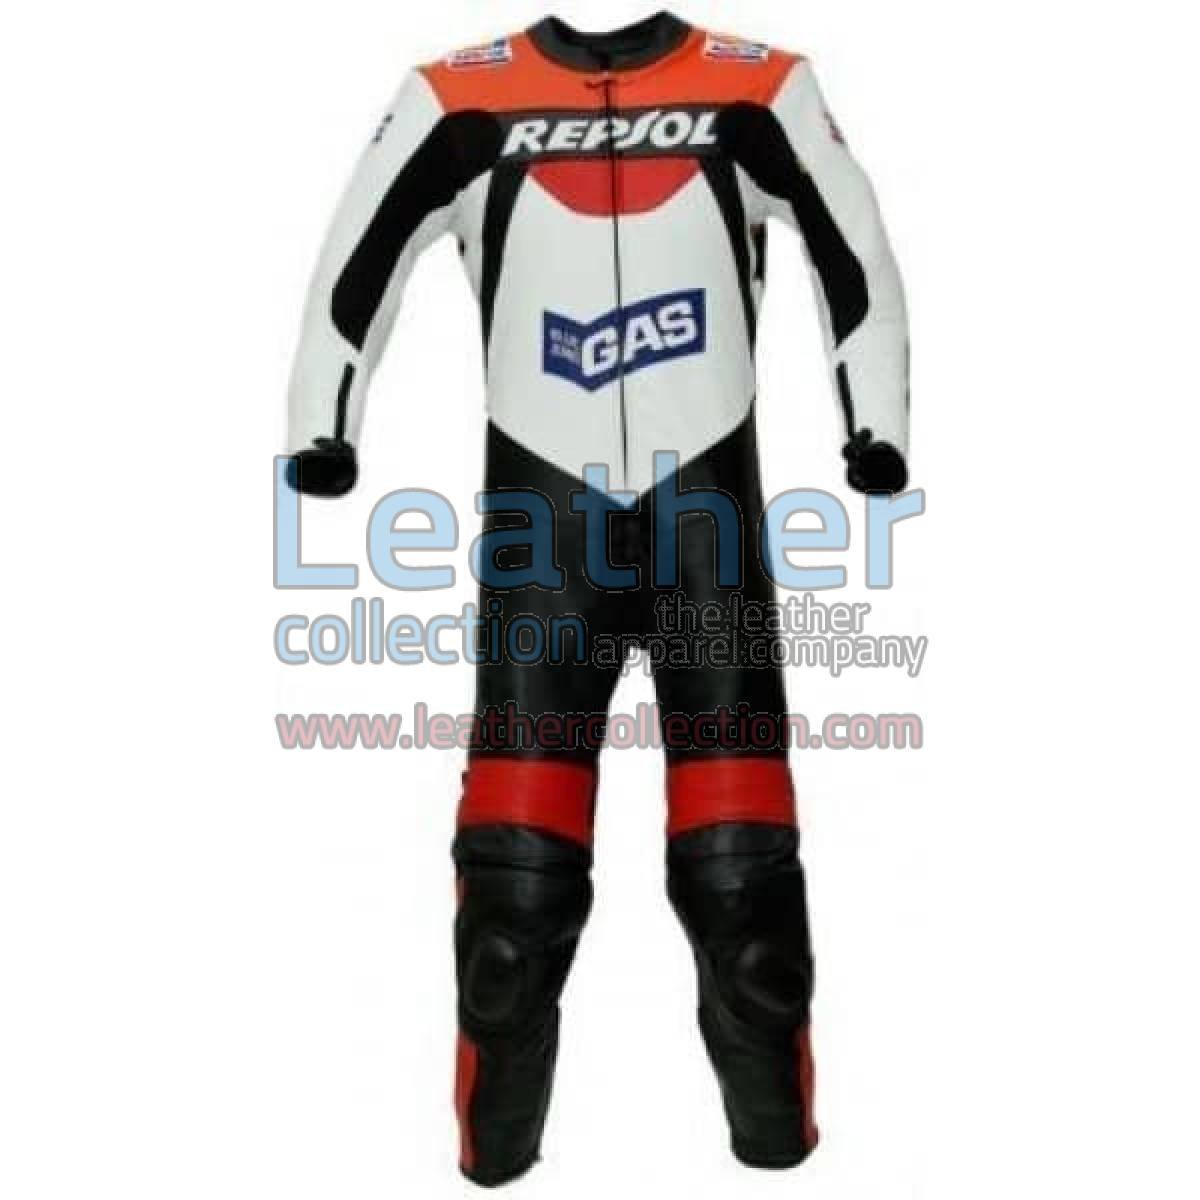 Repsol Gas Racing Leather Suit